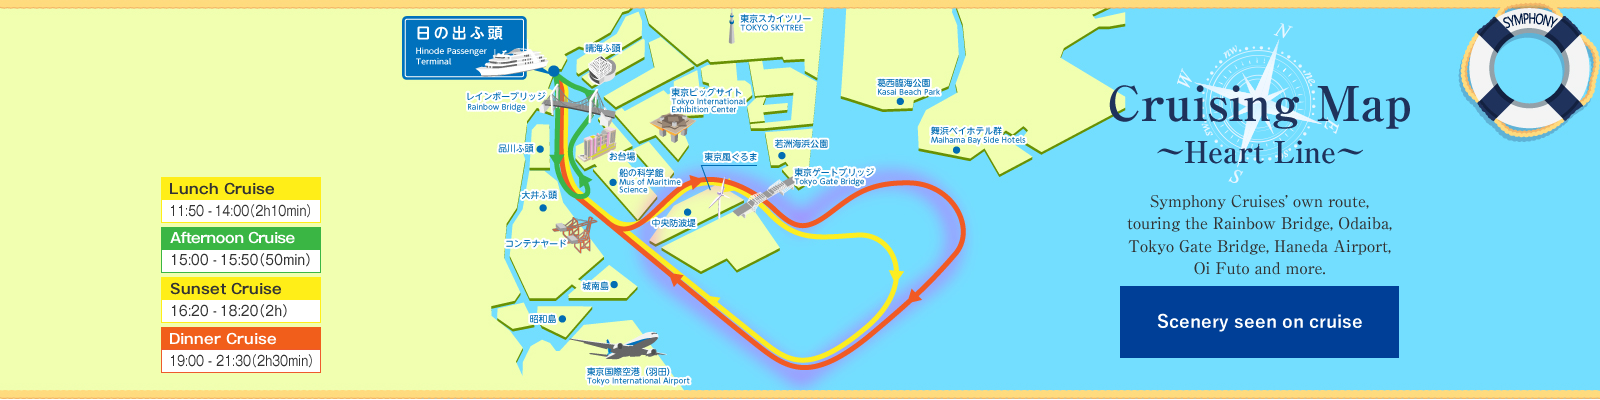 Cruising Map -Heart Line-